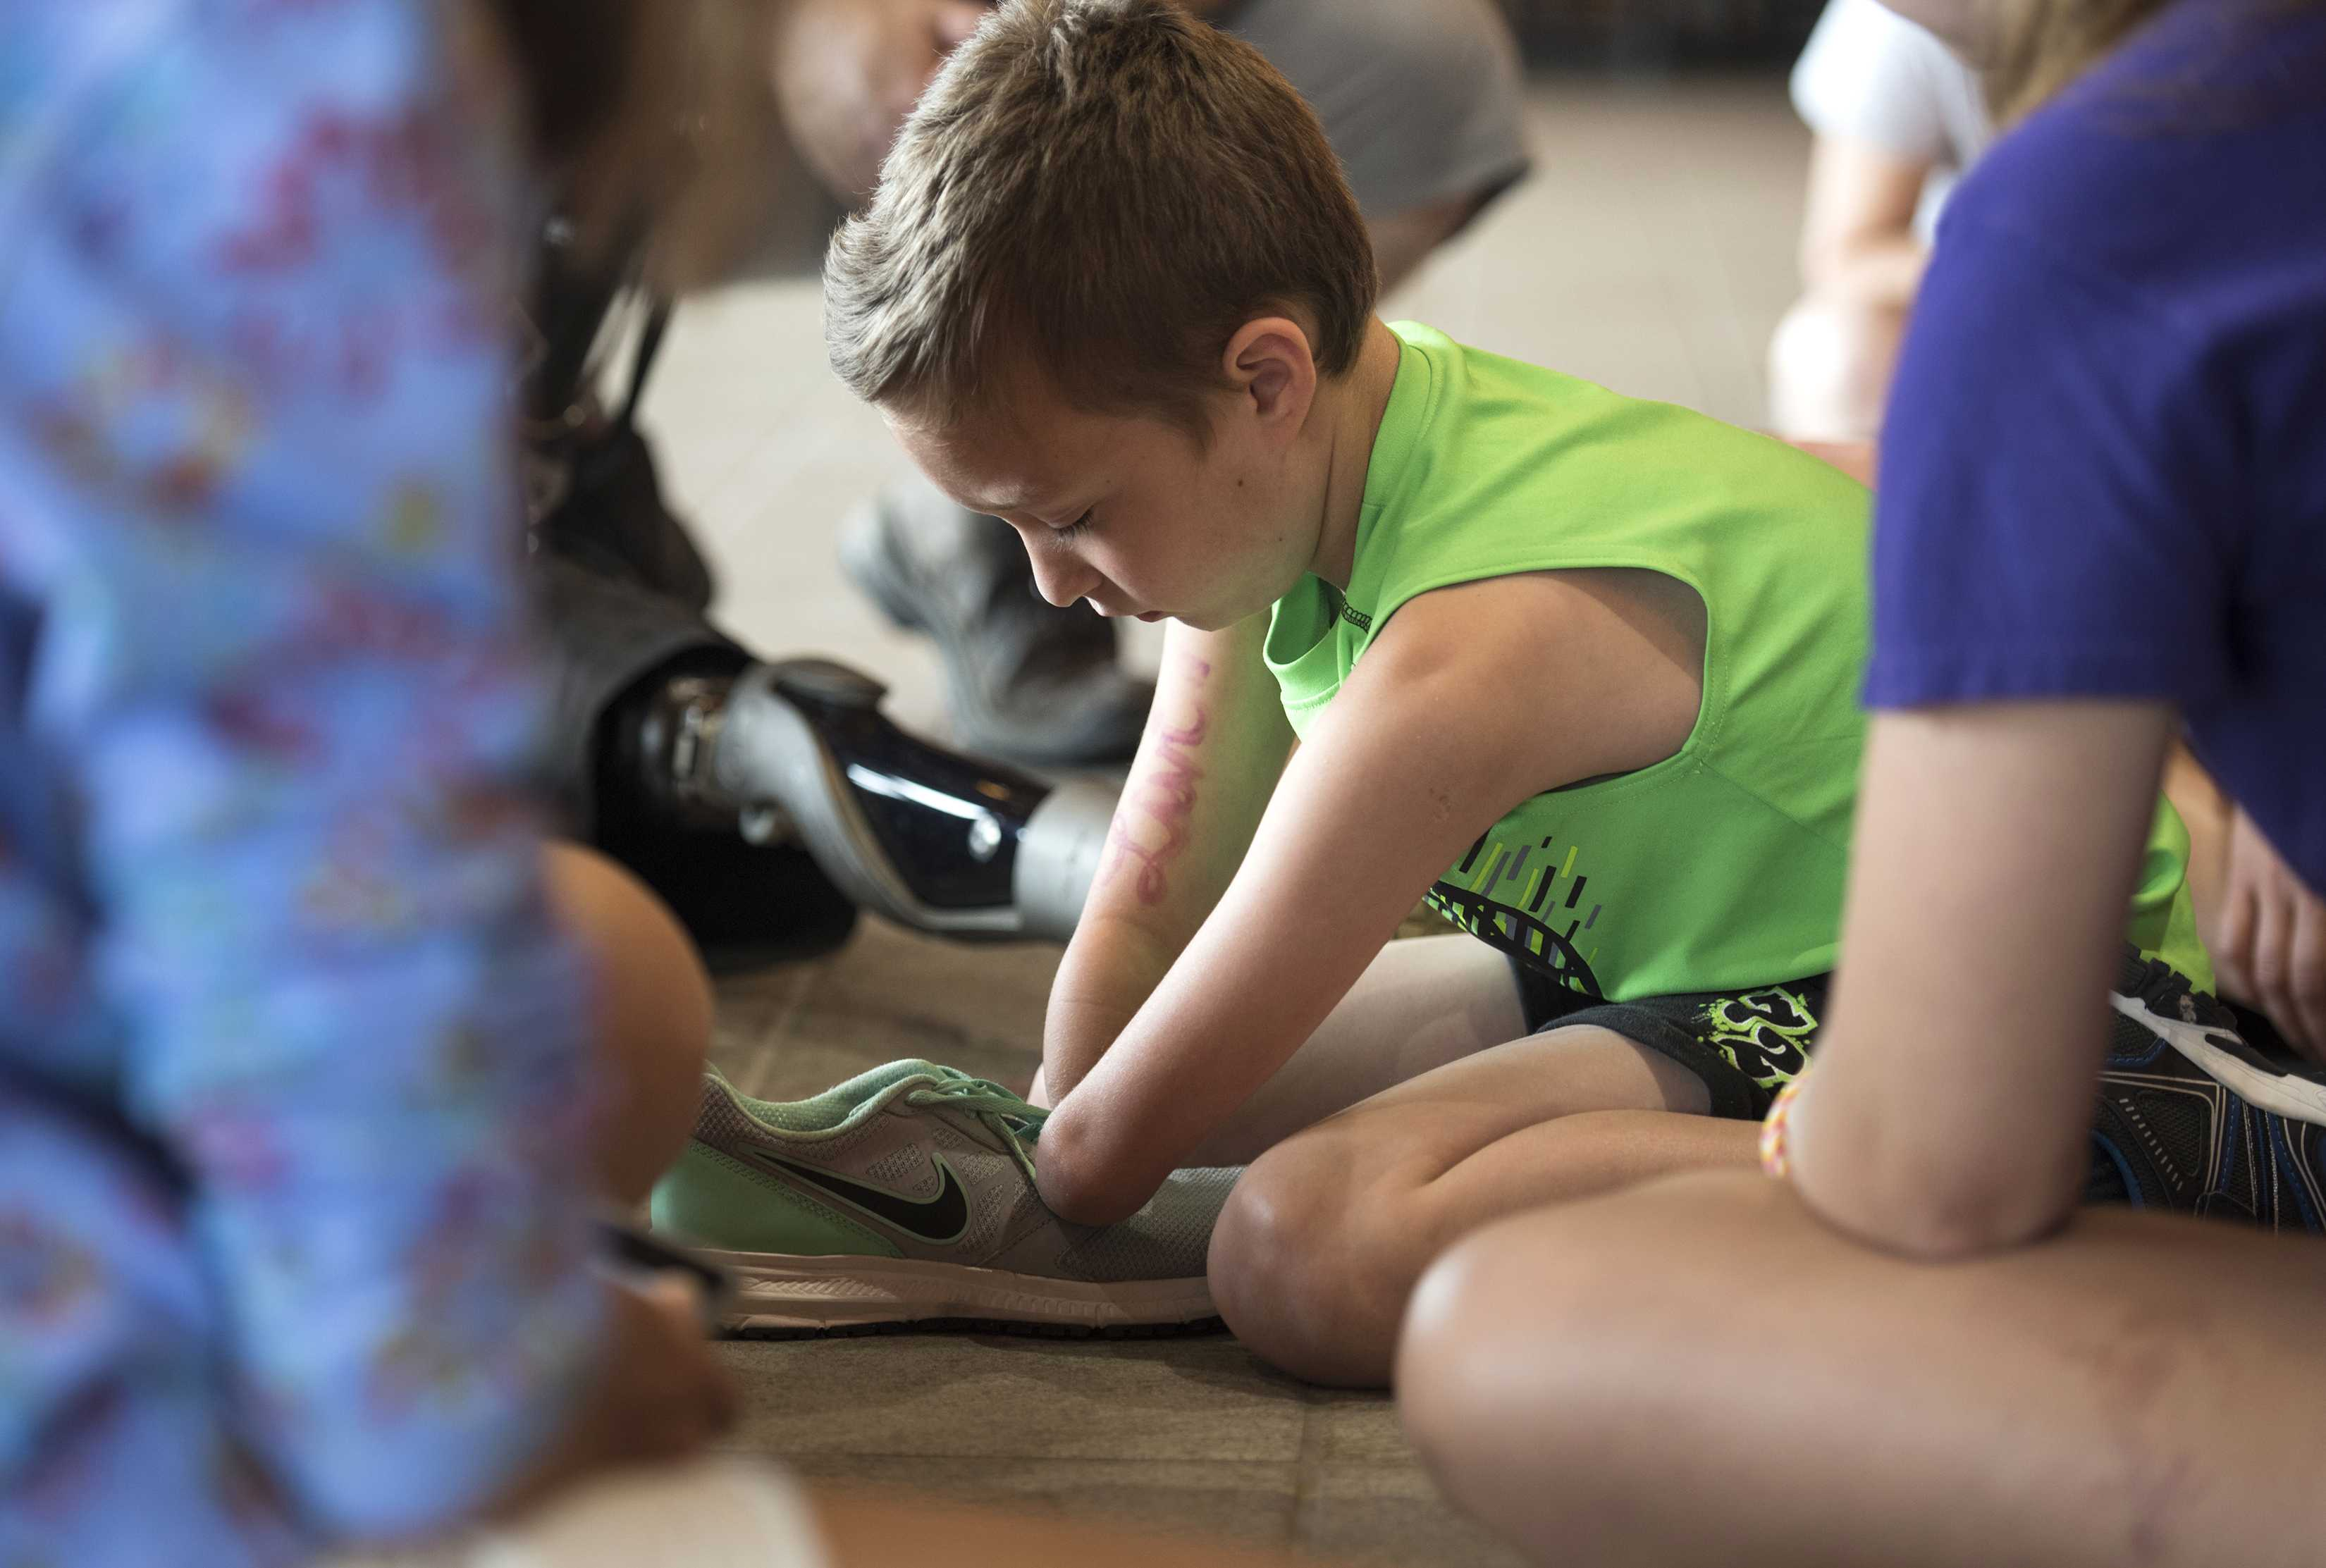 Eight-year-old Sam Becker, of Ithaca, N.Y., learns to tie a knot during an occupational therapy group session on the second day of Camp No Limits Friday,  July 8, 2016, at the Rocky Top Student Center on Quinnipiac University's York Hill Campus.